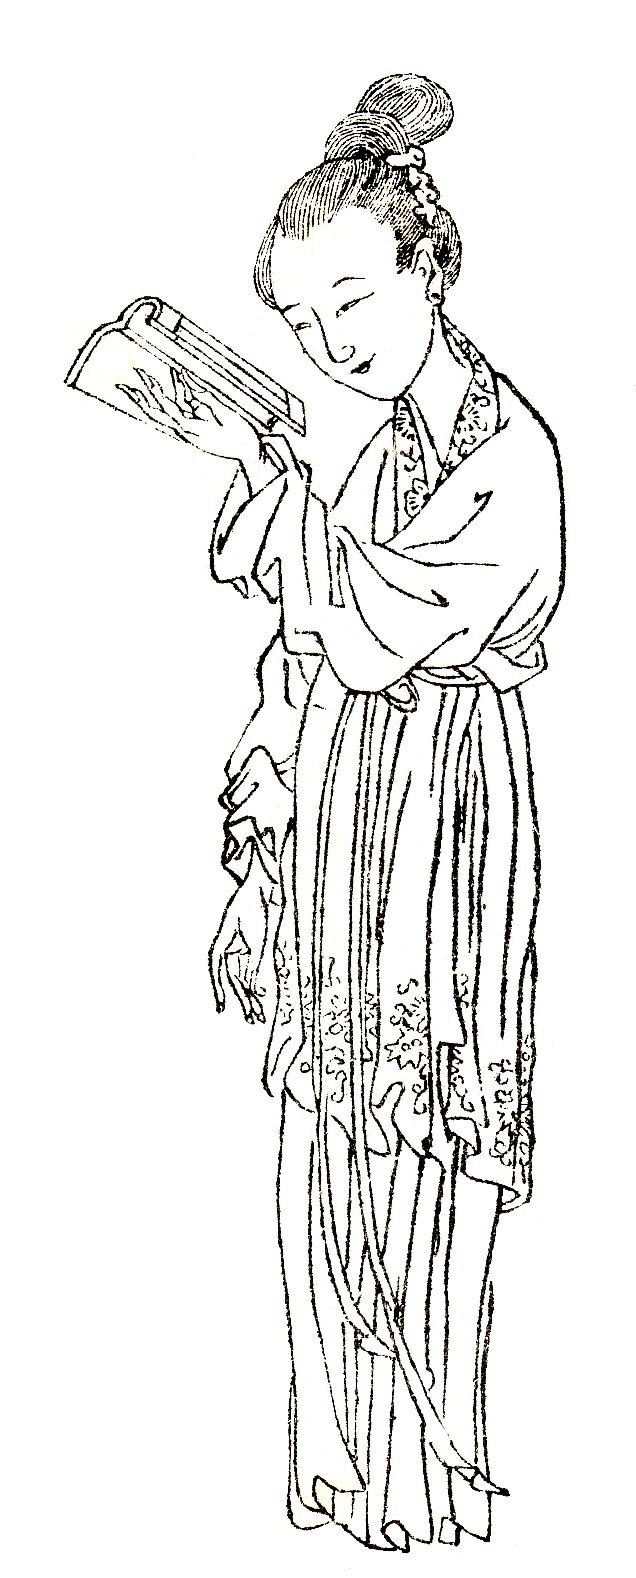 Ban Zhao, courtesy name Huiban, was the first known female Chinese historian.